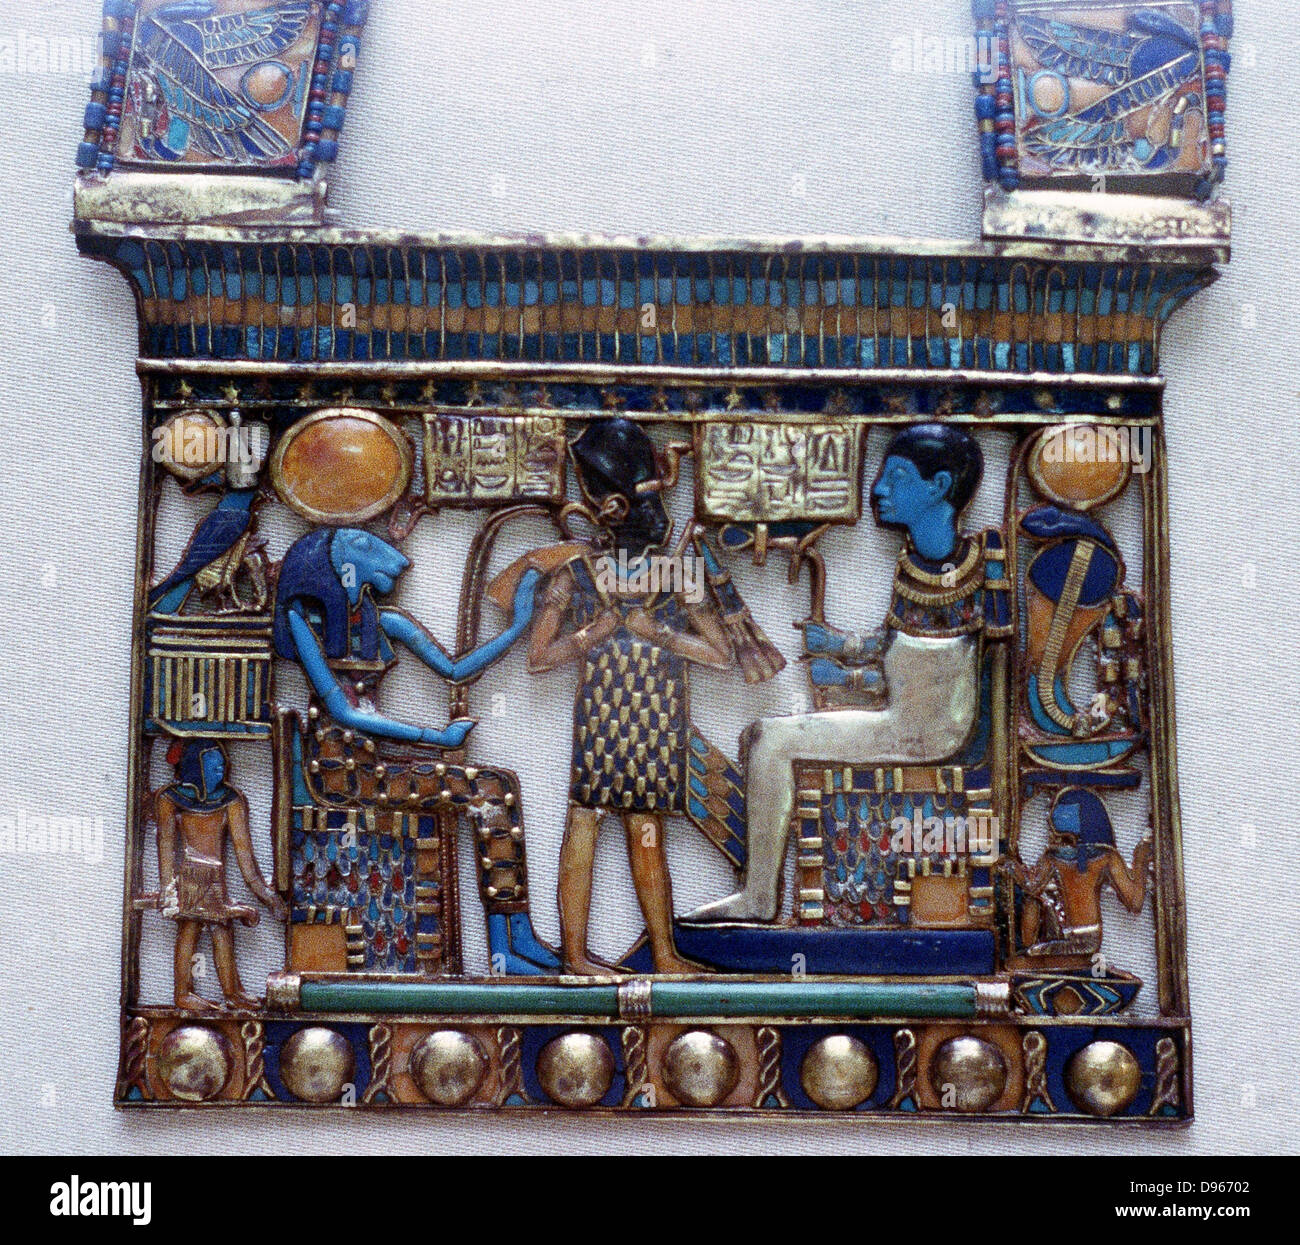 Pectoral jewel from tomb of Tutankhamun showing Ptah, creator of universe and patron of craftsmen, and his consort, - Stock Image